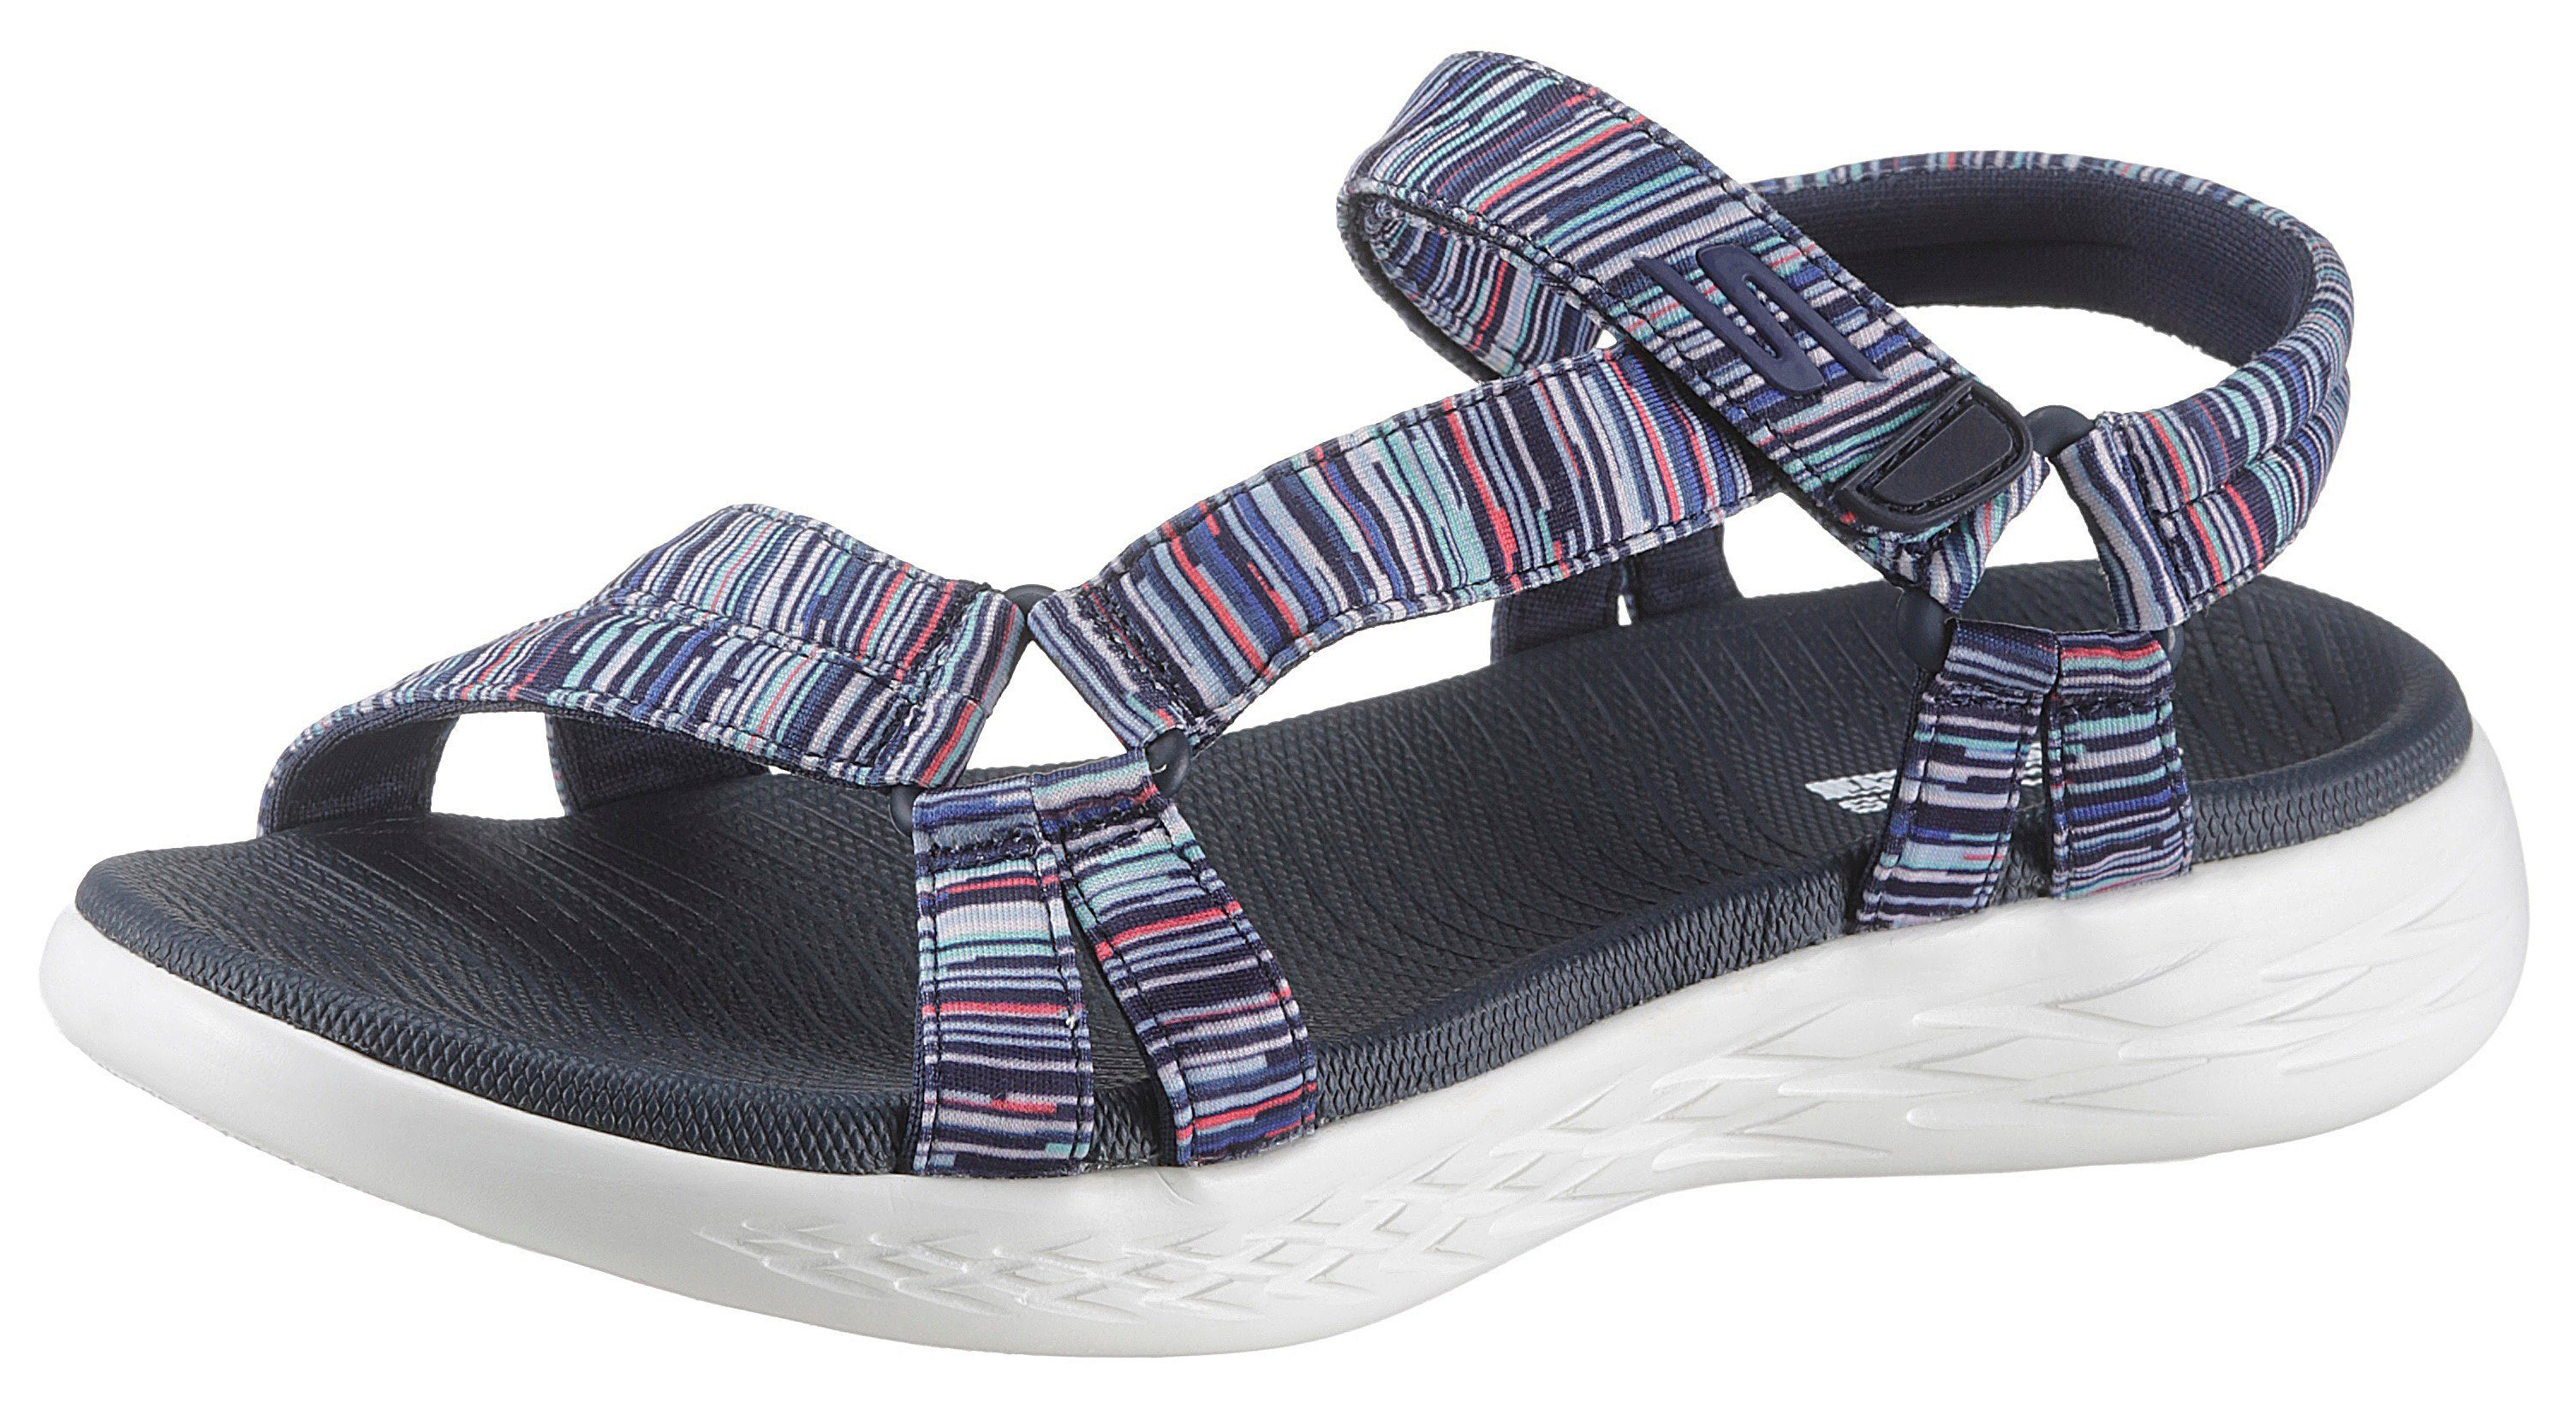 Skechers »On the Go 600« Sandale mit Goga Mat Technology online kaufen | OTTO